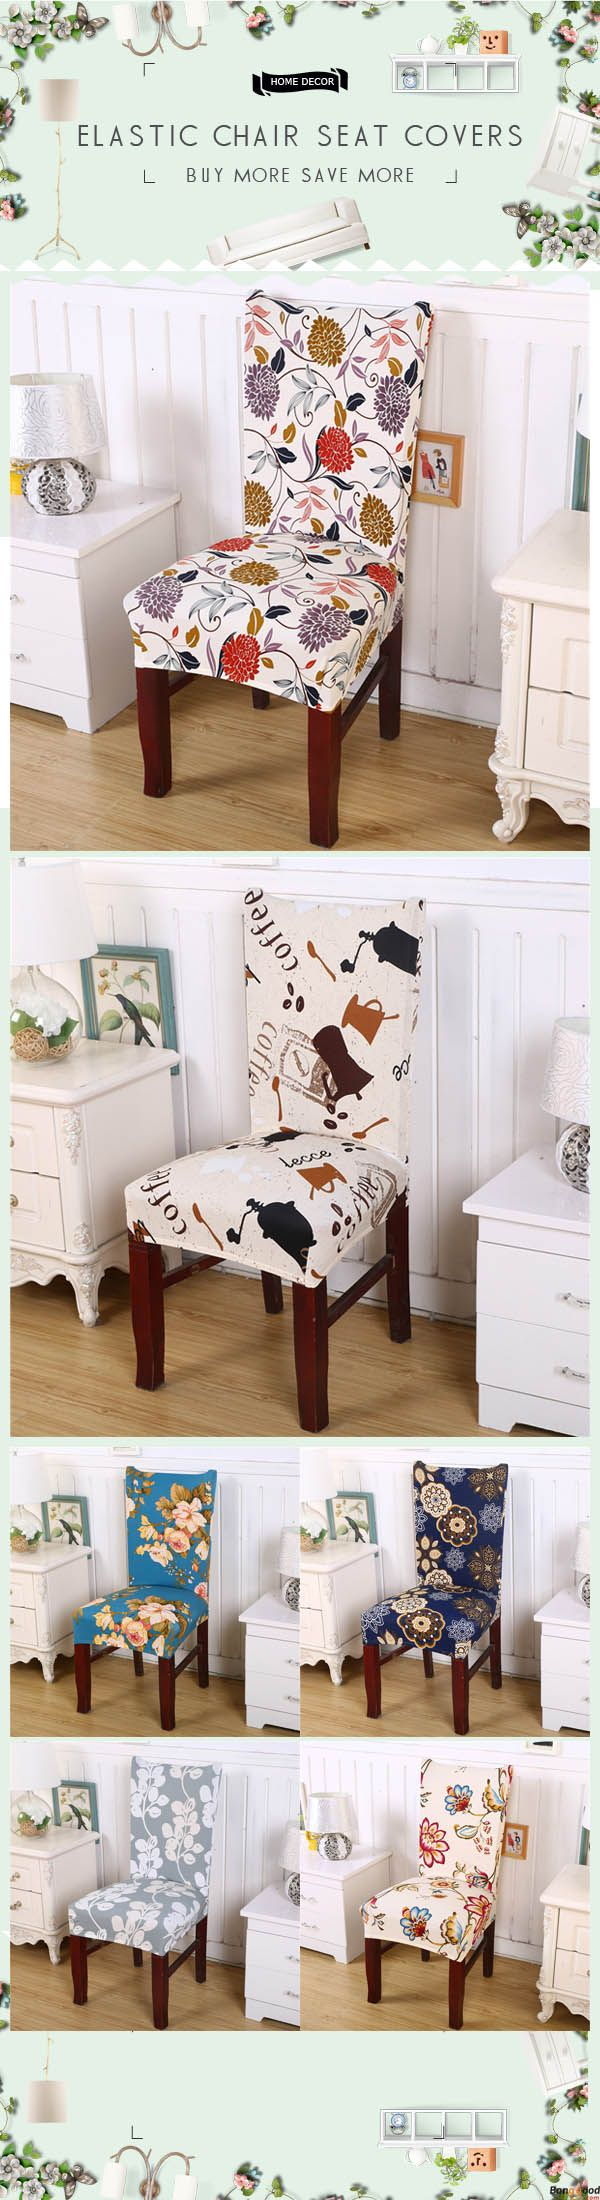 Removable Fashion Dining Chair Cover Protector Seat Covering Hotel Ceremony Dining Room Decor. US$6.99 + Free Shipping. Shop at banggood with super affordable price.